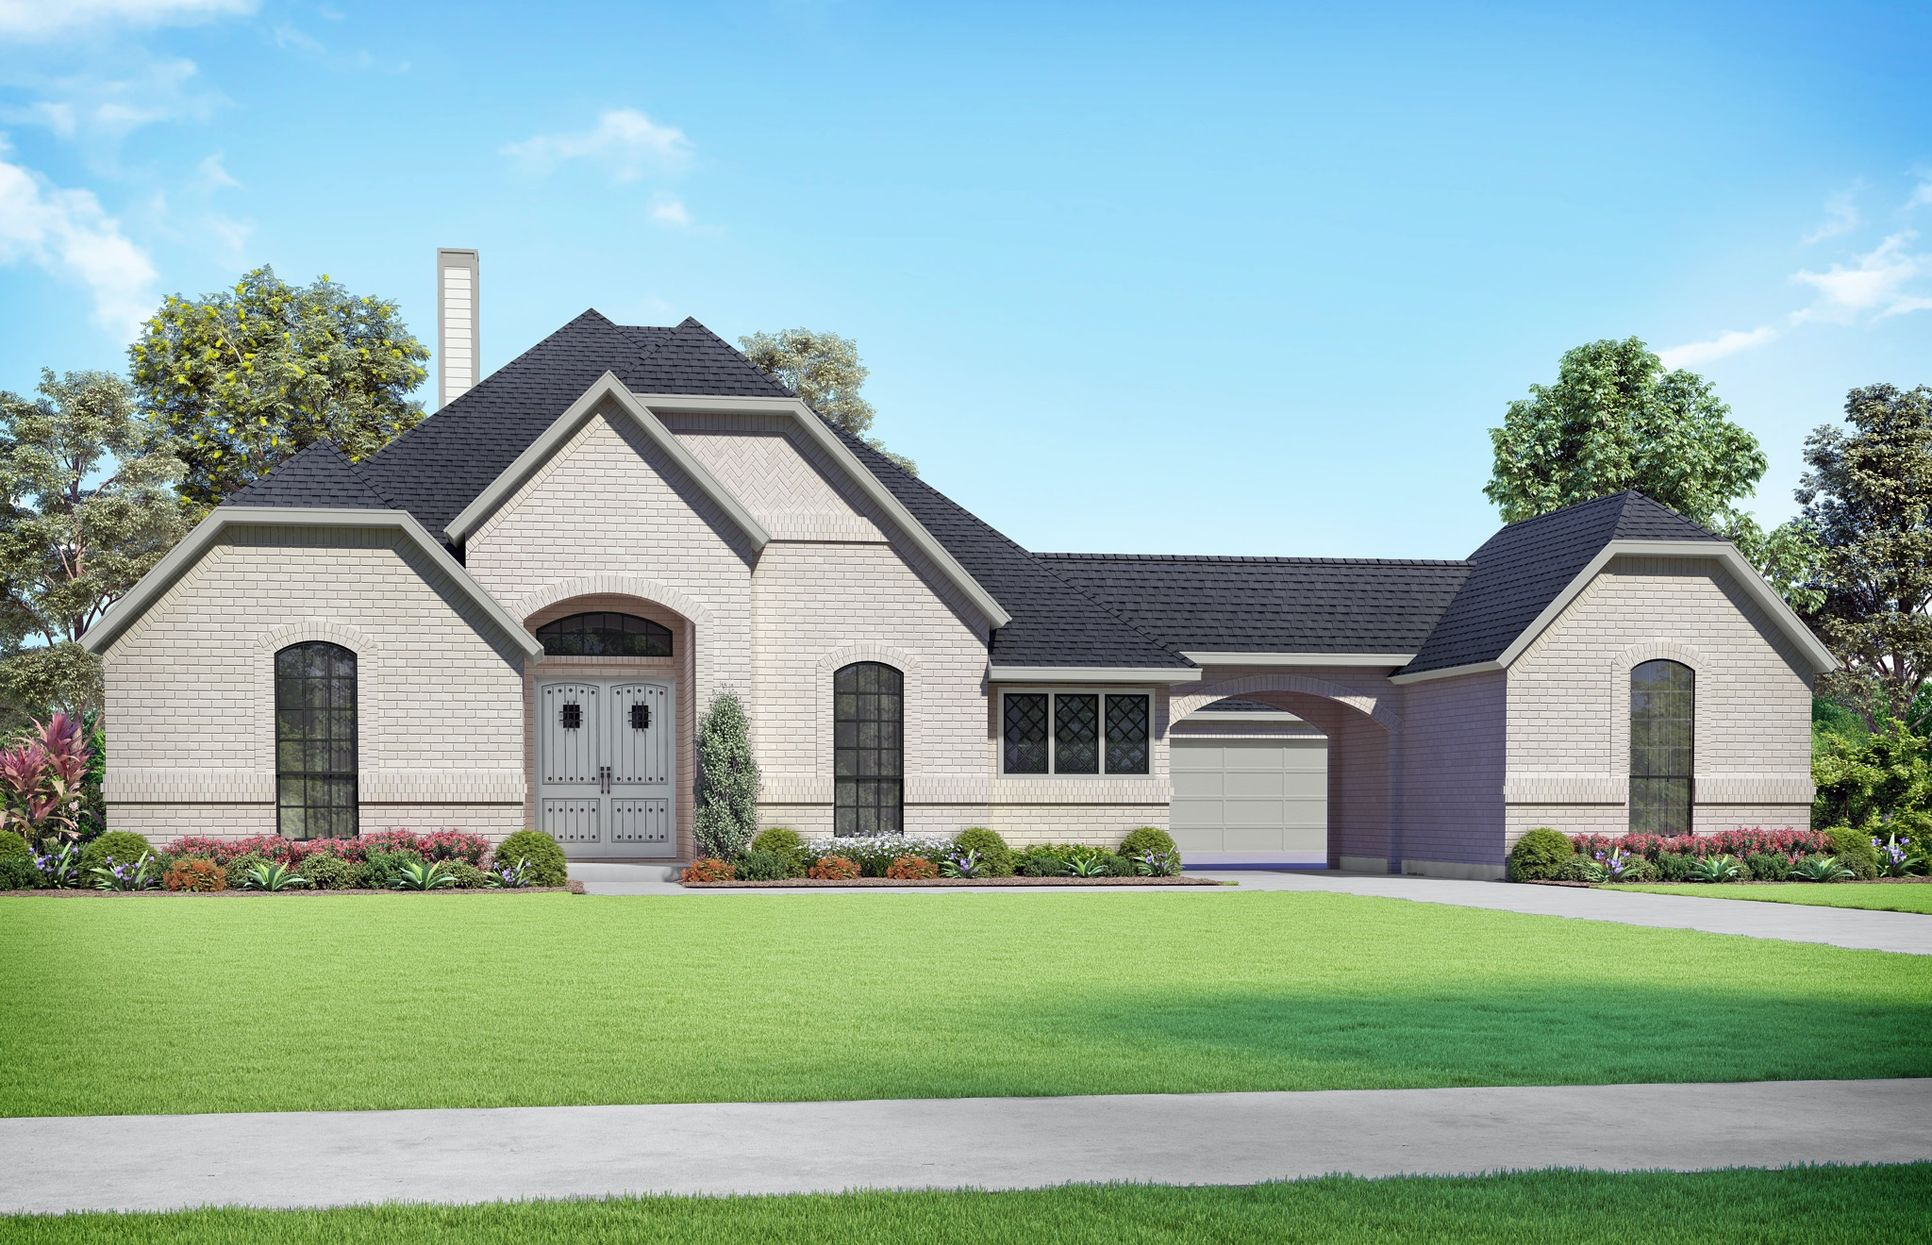 Travis Elevation A. Images are artist renderings and will differ from the actual home built.:Travis Elevation A